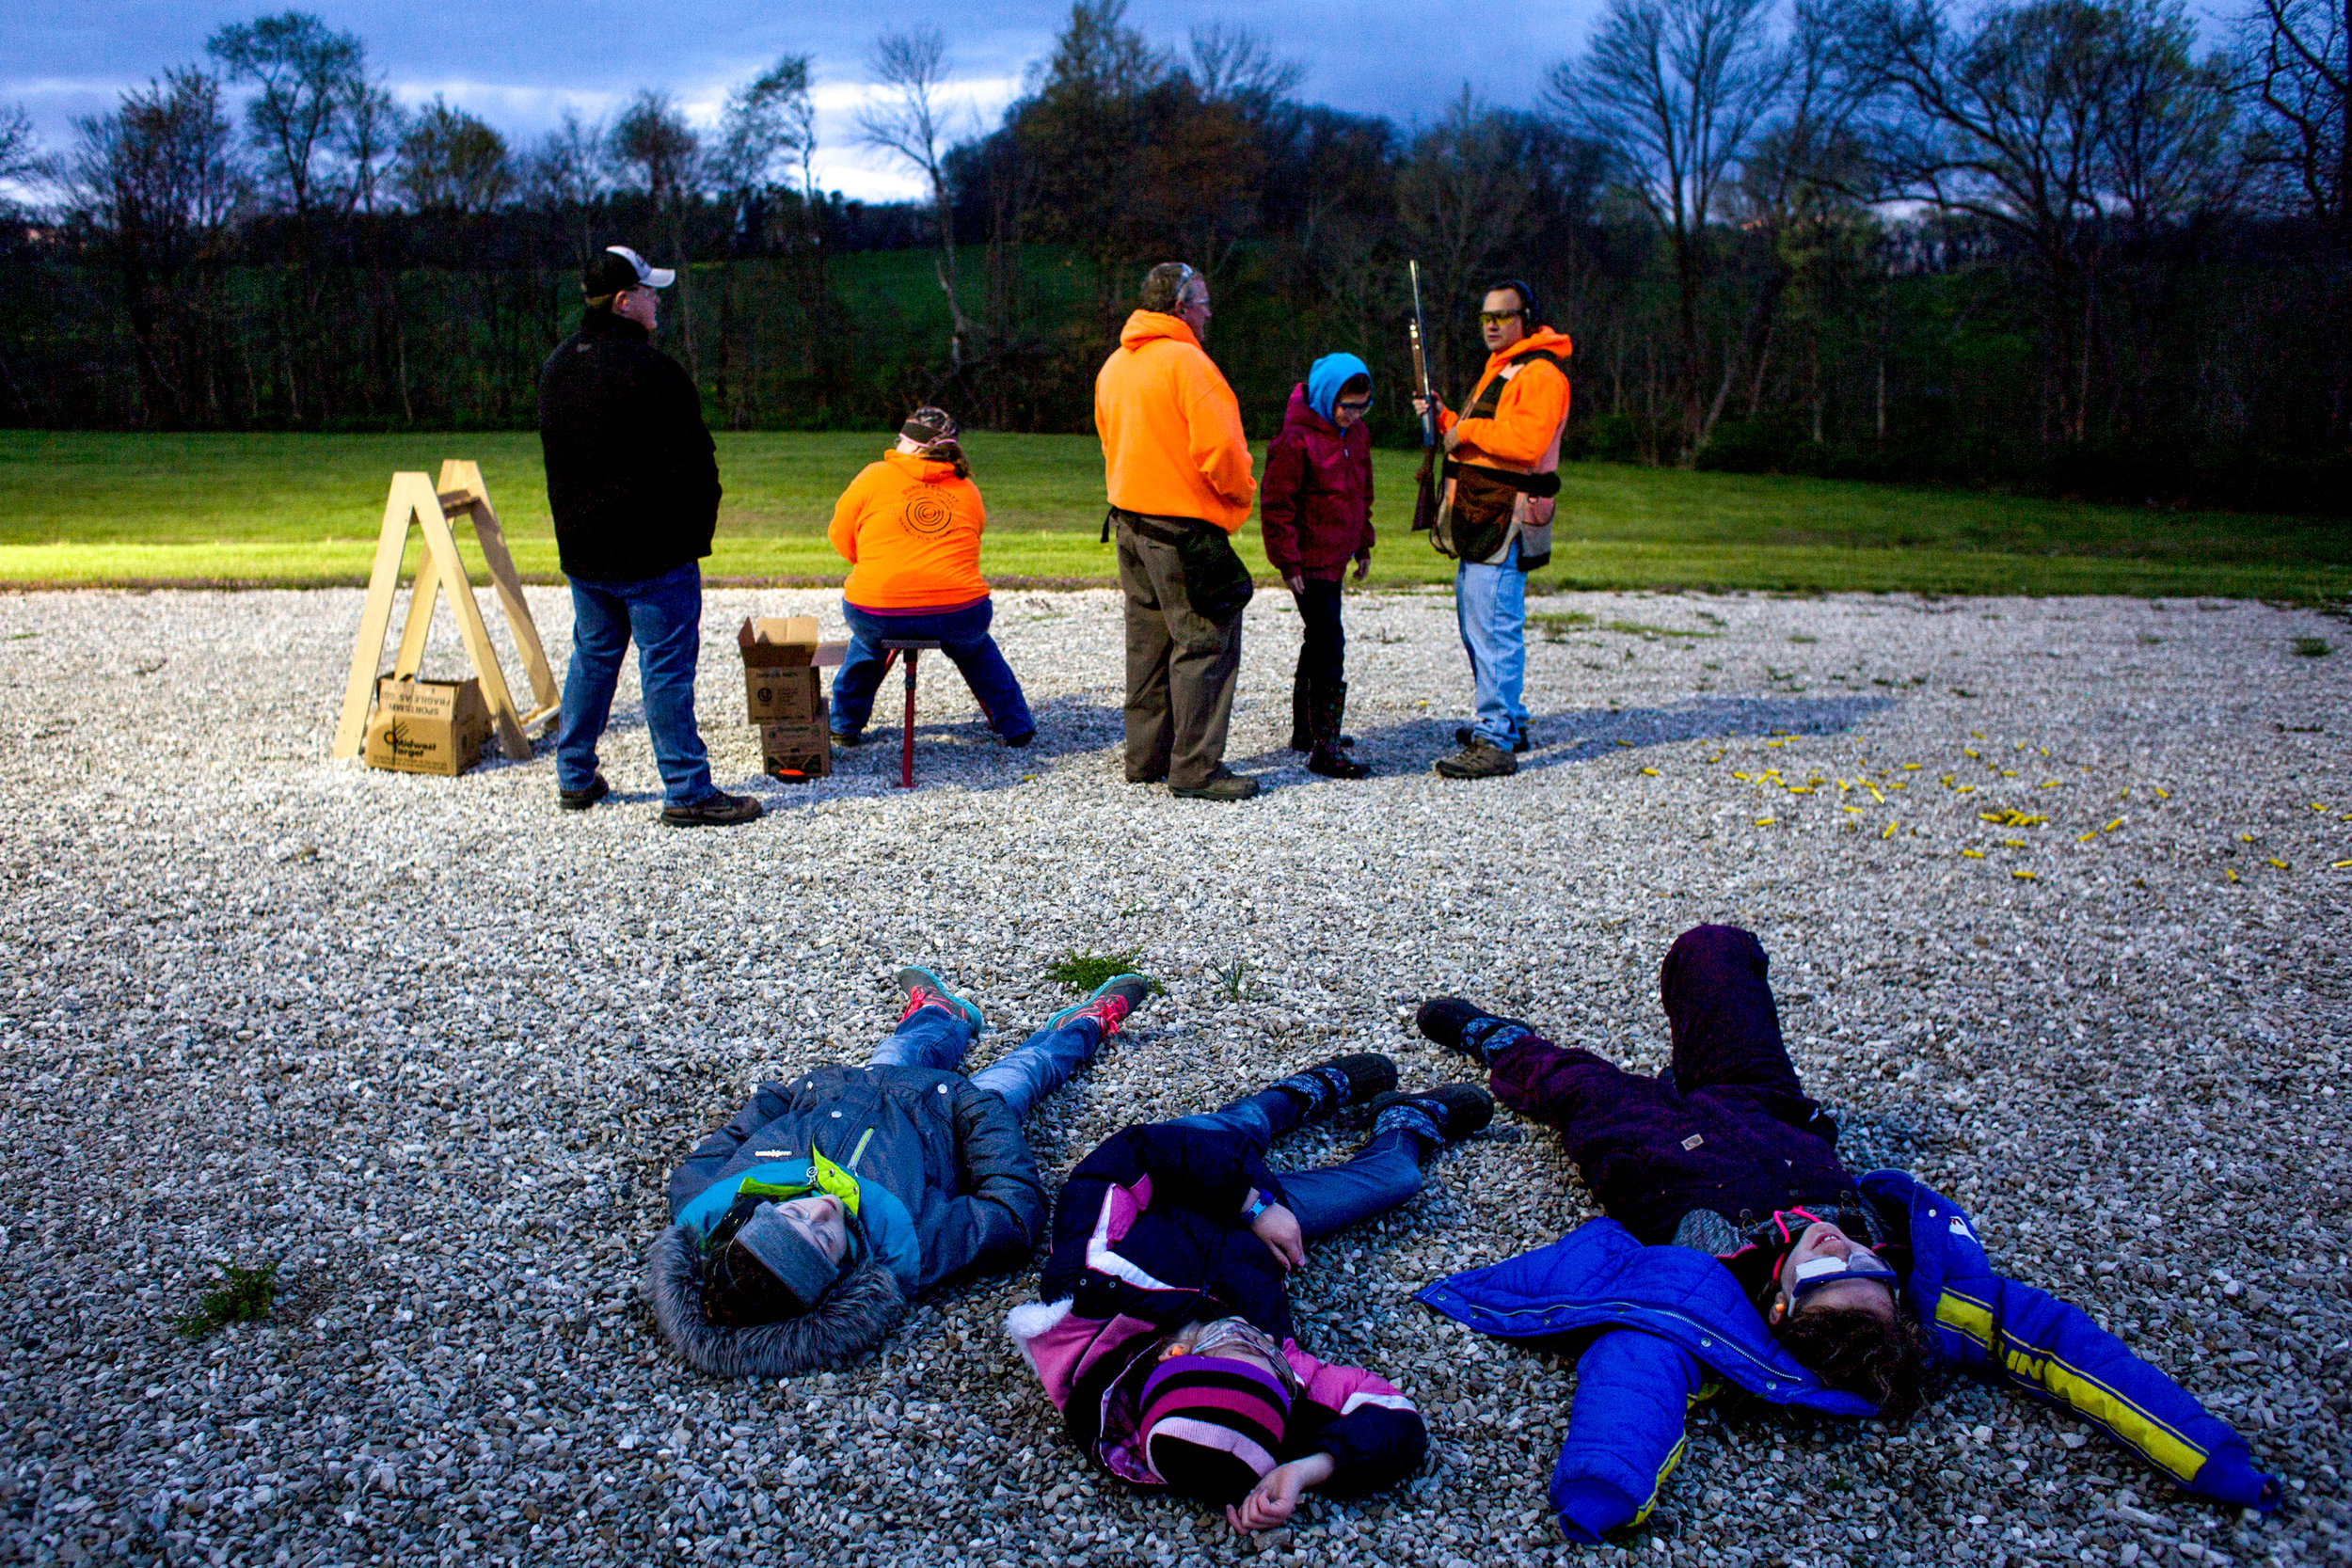 Ten-year-olds Lilly Knight of Jasper, left, Lillian Kuebler of Birdseye and Lydia Devillez of St. Anthony laid on the ground while Madelyn Miller of Birdseye practiced firing a shotgun during a Dubois County 4-H Shooting Sports meeting Thursday at the 4-H fairgrounds in Bretzville.